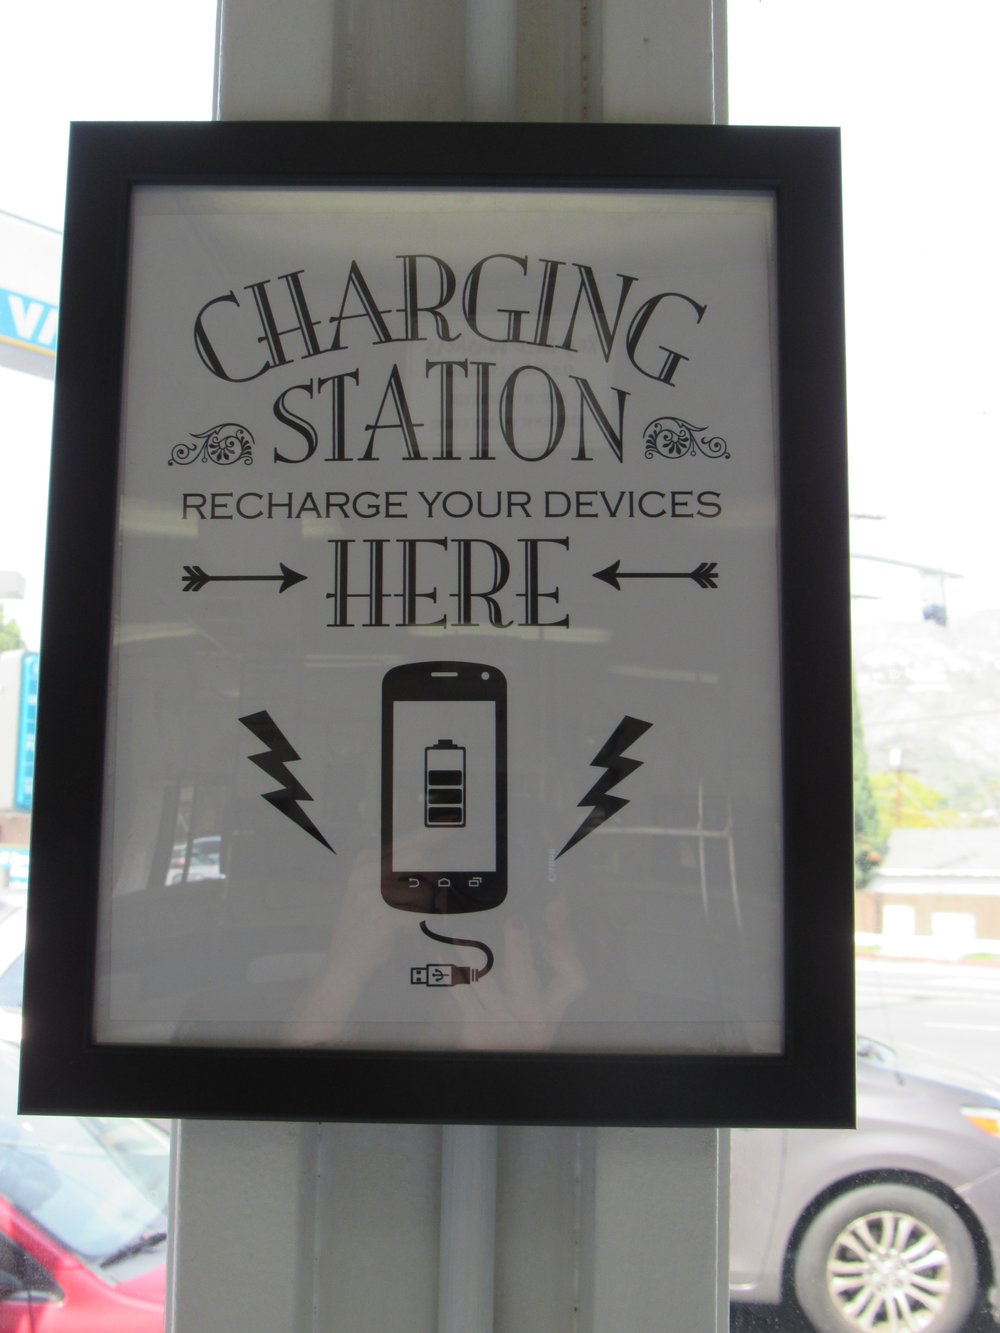 CHARGING STATIONS -  charge up your devices so you never run out of battery! we wouldn't want you to miss out on that important call or streaming movie final scene!